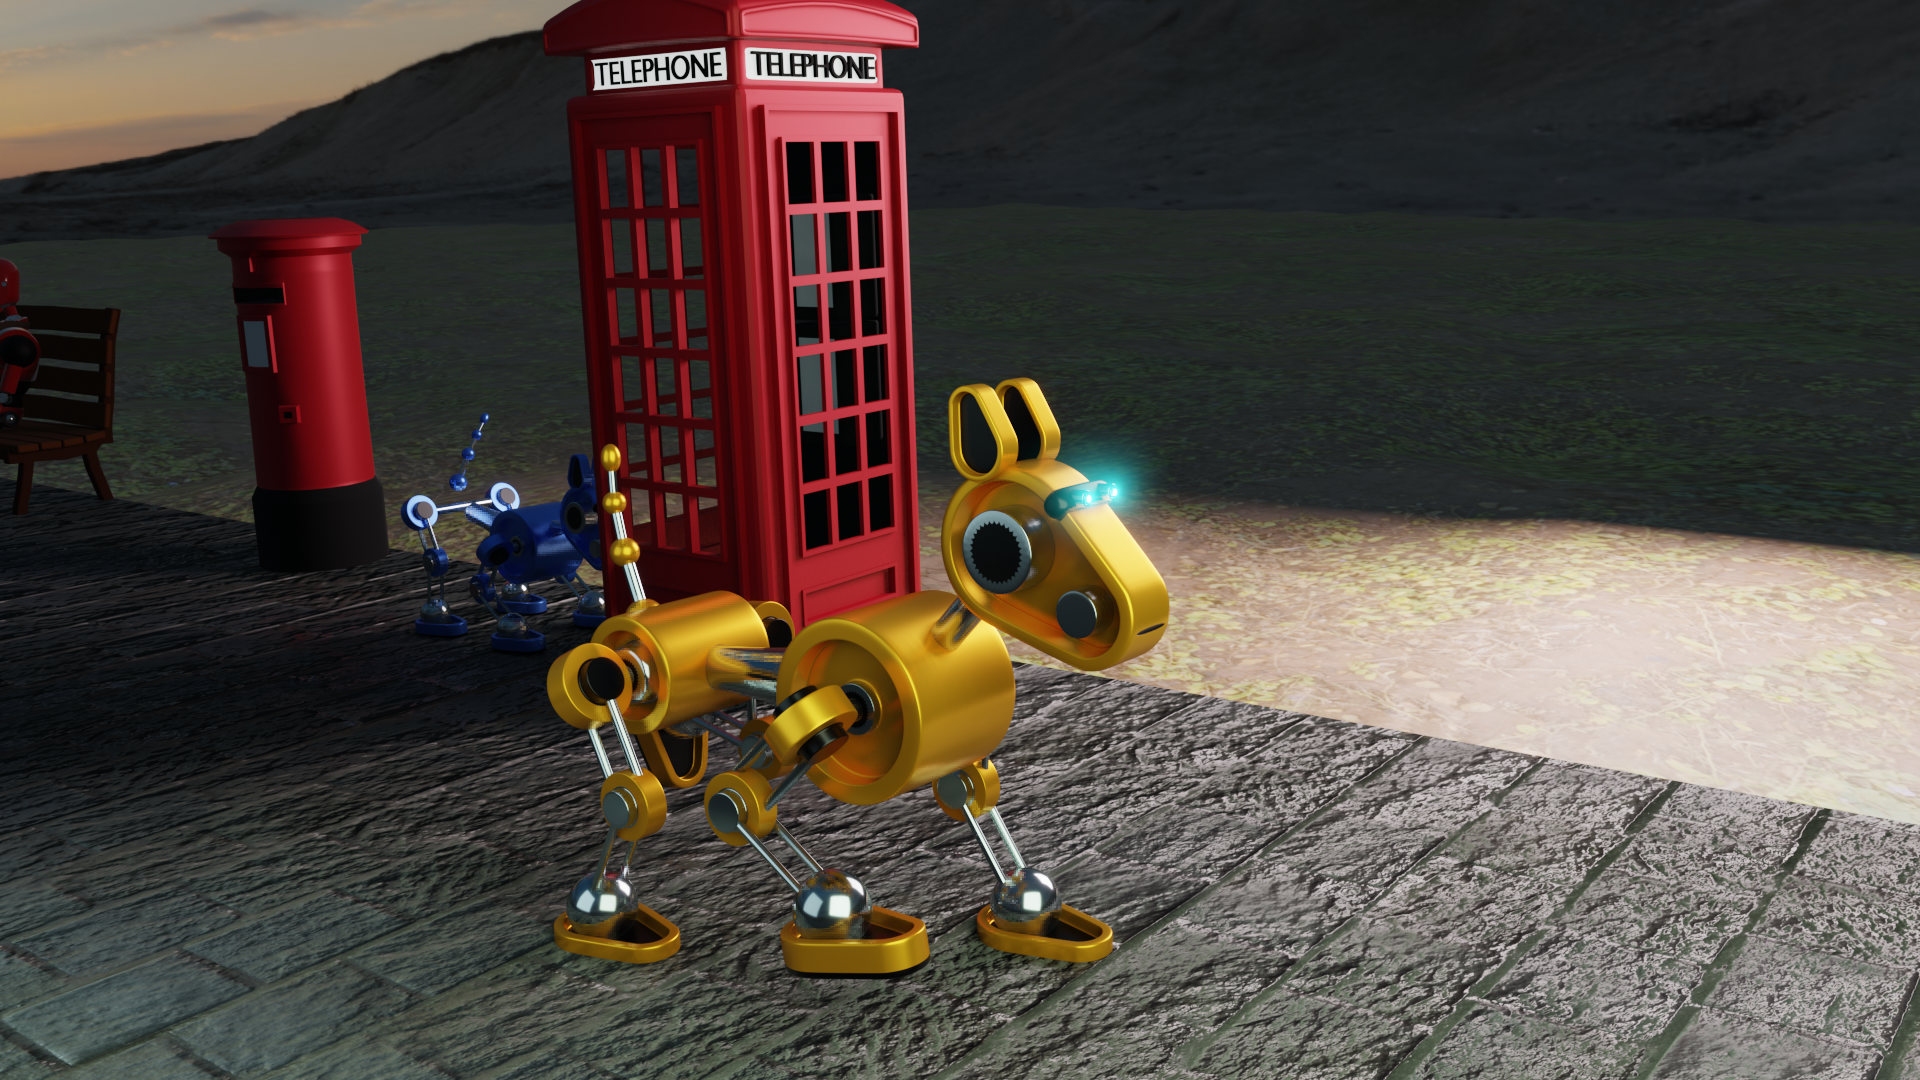 Robot dog in front of a telephone box